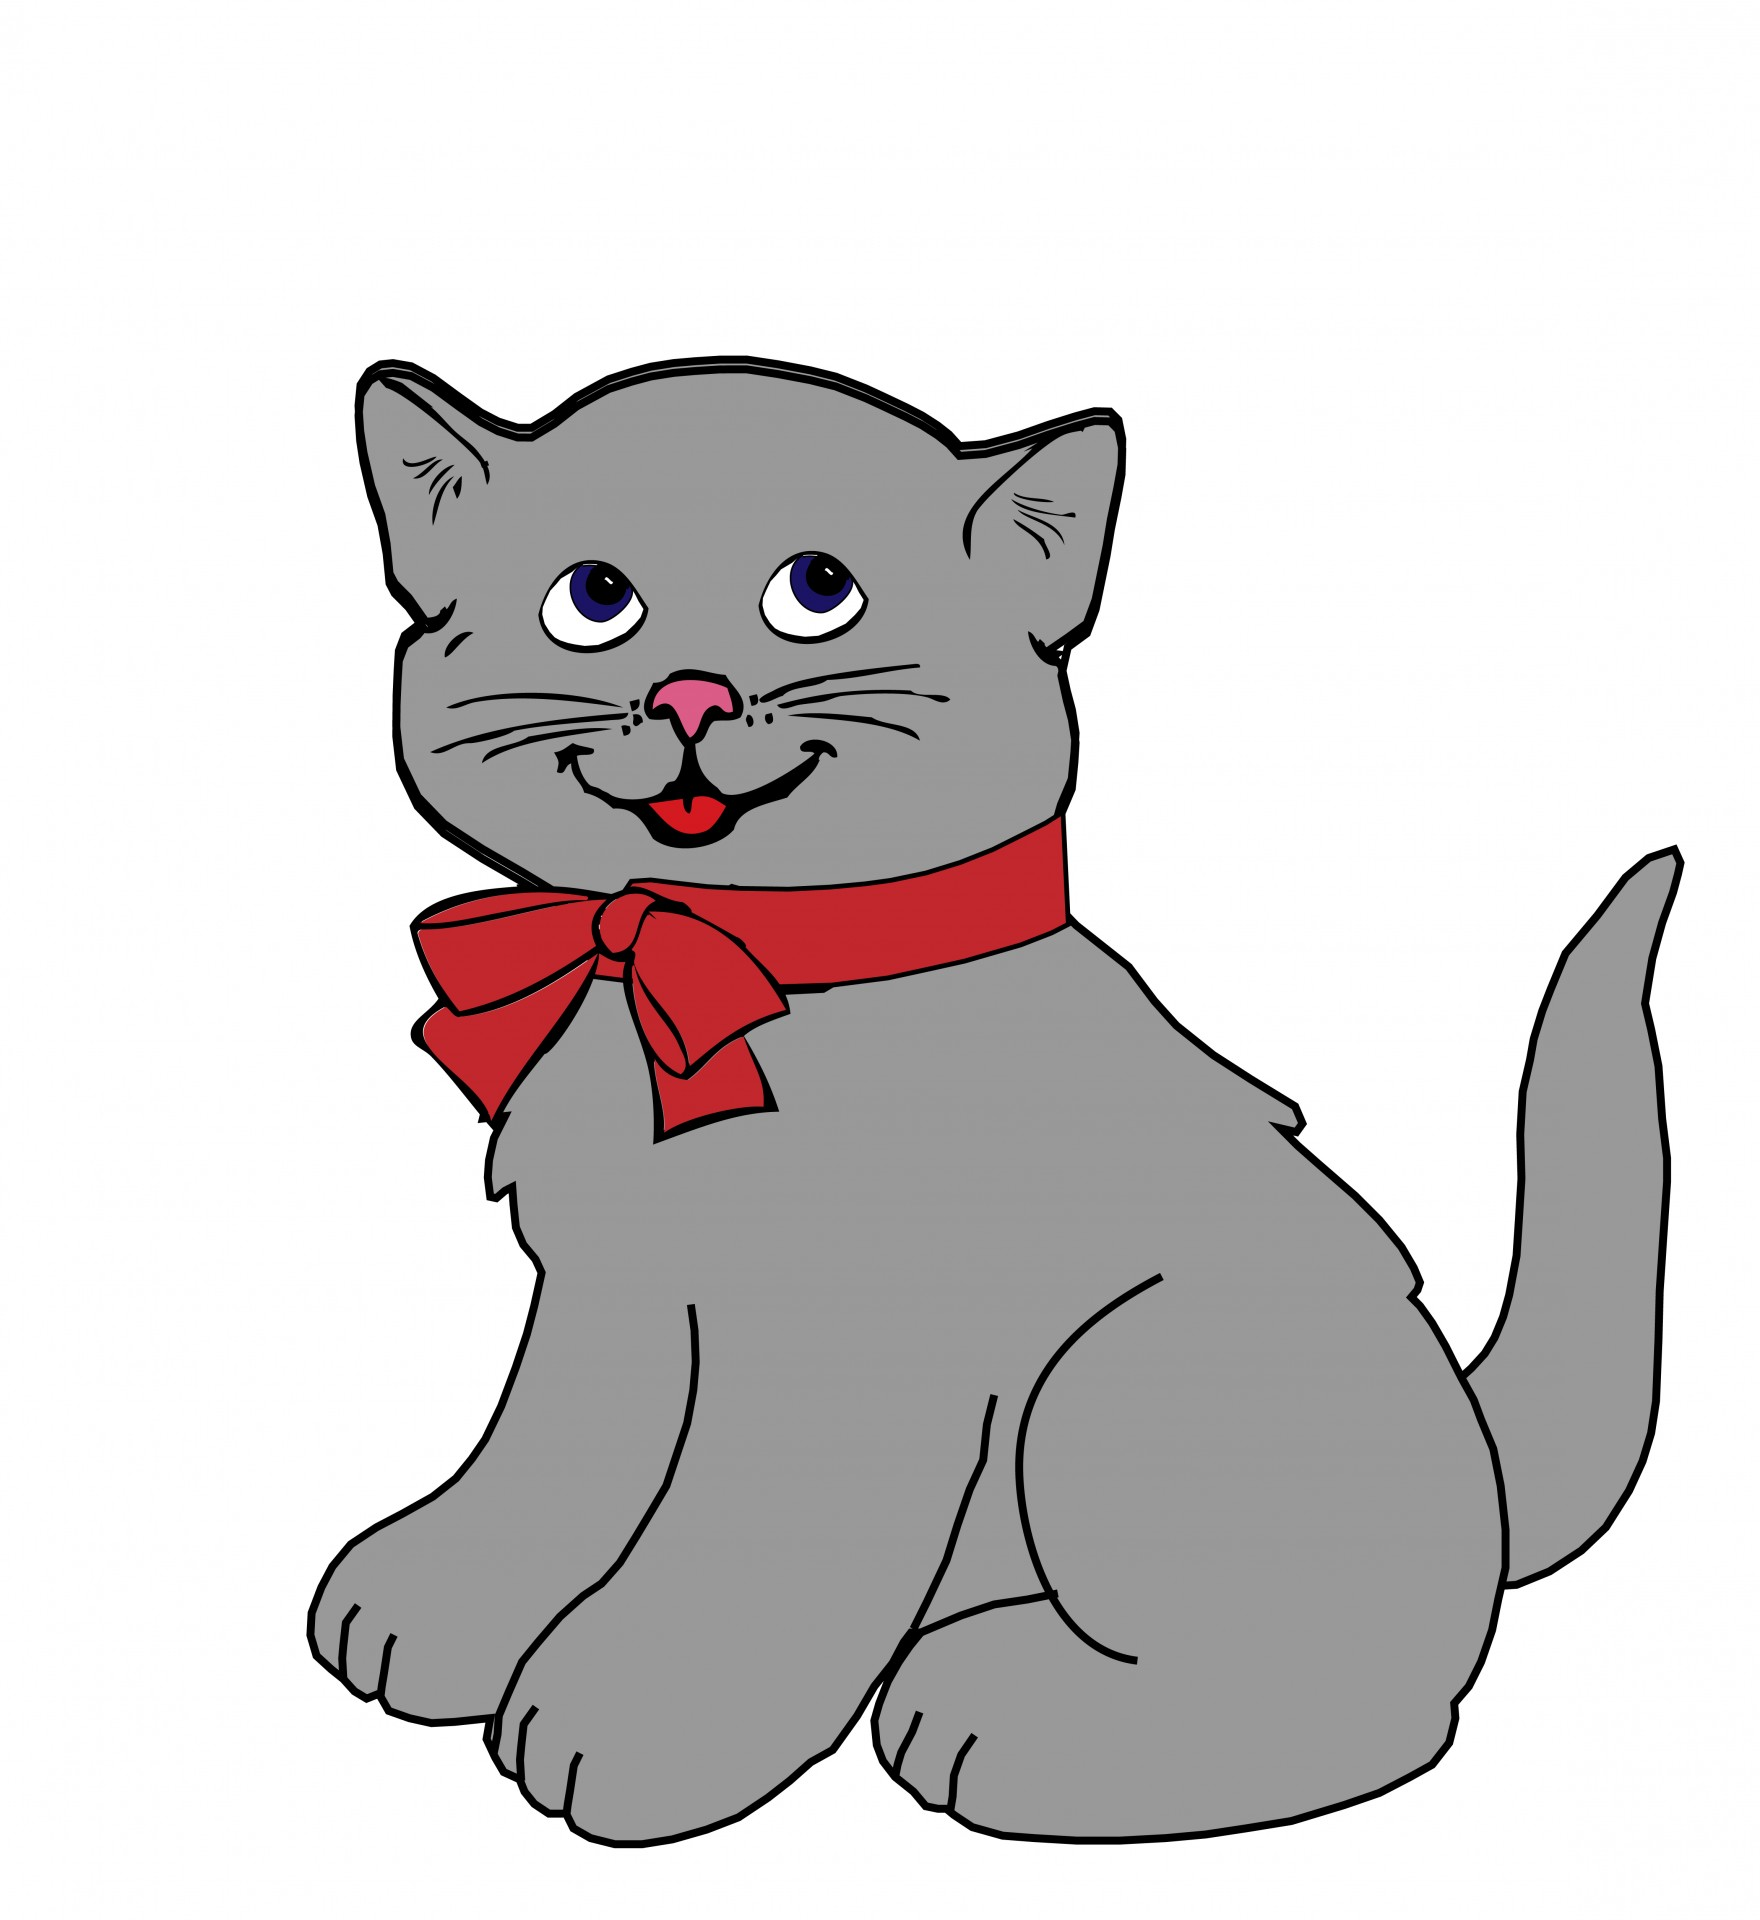 Cats clipart bow, Cats bow Transparent FREE for download on.